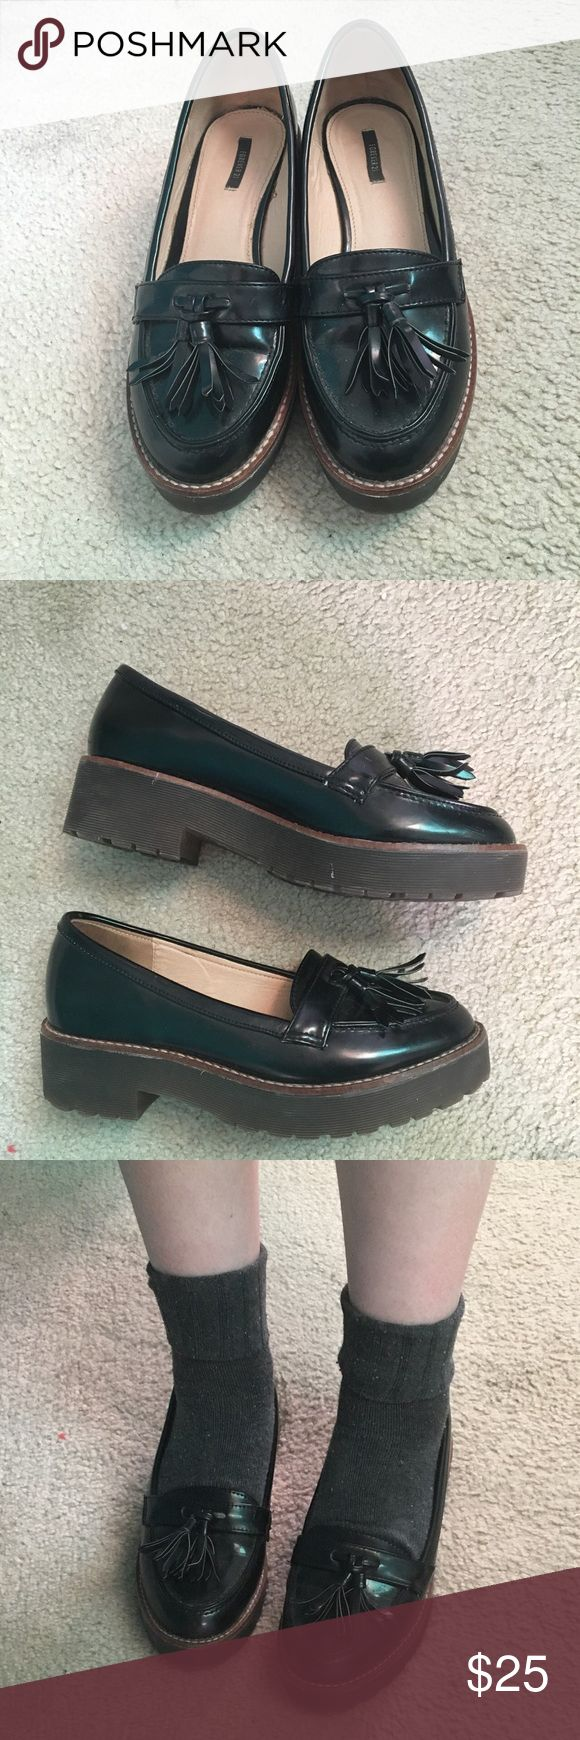 Chunky tassel loafers Super cute loafers that were originally purchased from forever 21. In good used condition. They really give those preppy school girl vibes! Tagged as Dr. Martens for exposure. Tags Forever 21, Unif, Dr. Martens, Dollskill, Skechers Dr. Martens Shoes Flats & Loafers